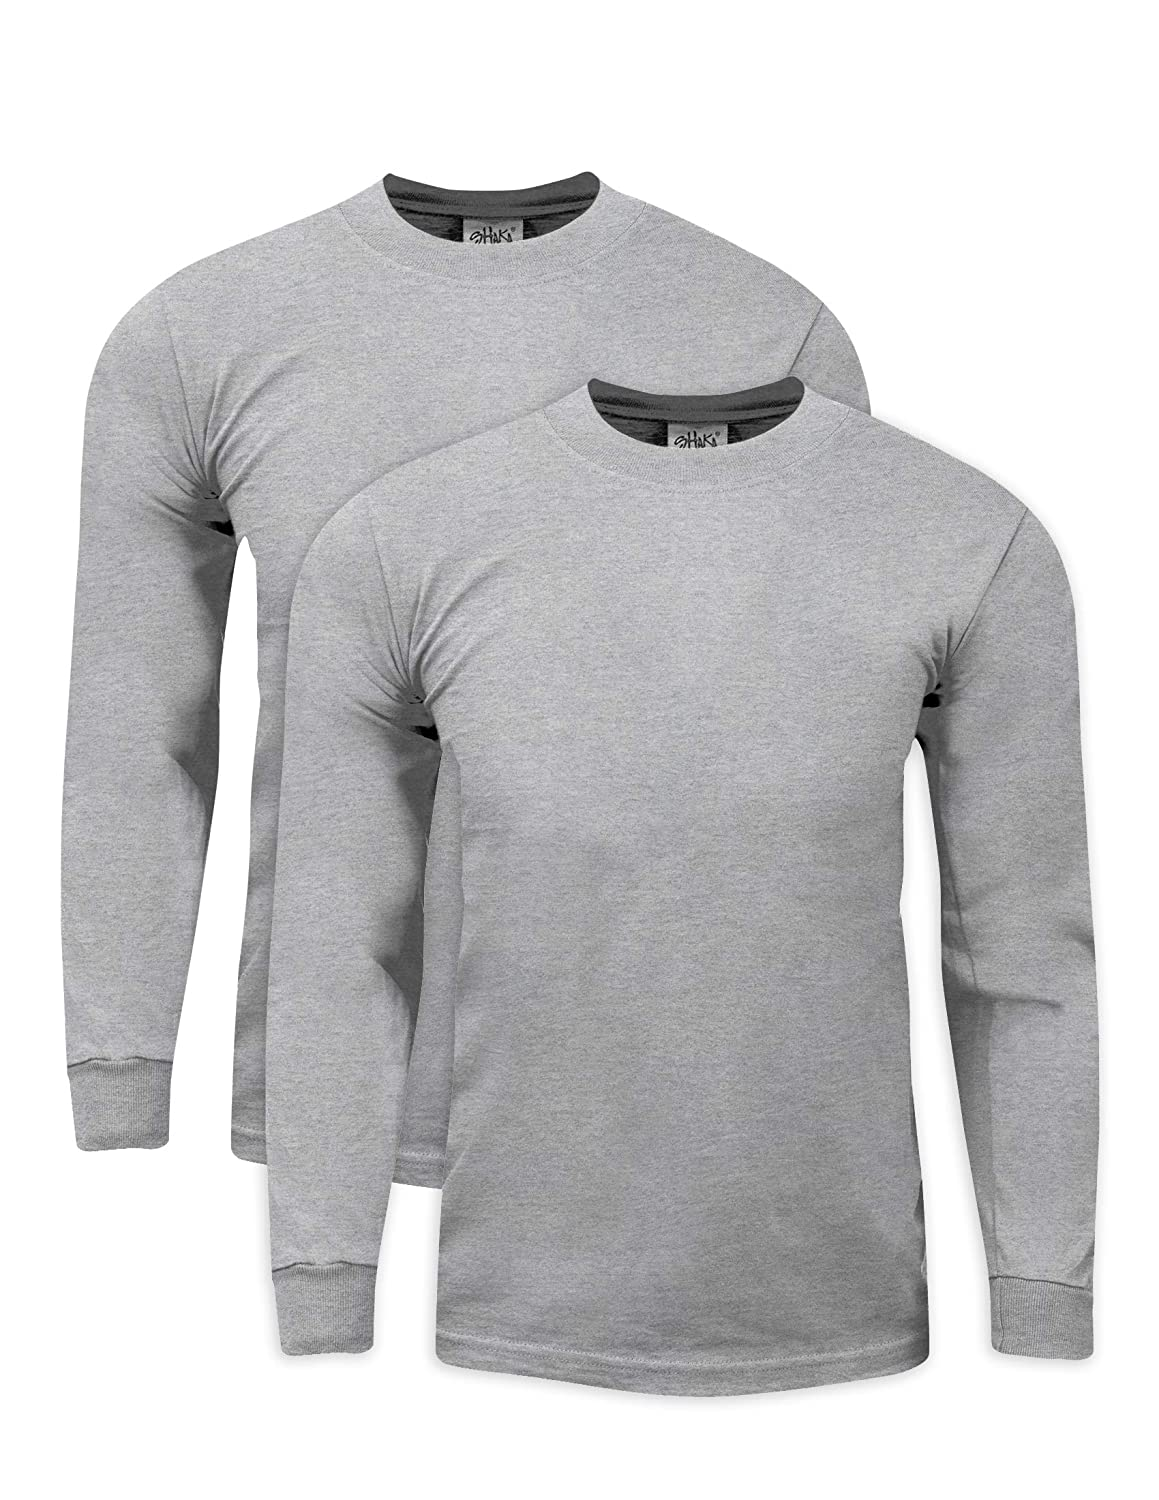 Shaka Wear 2Pack Men's Max Heavy Weight 7 oz Cotton Long Sleeve T-Shirt MHL_2PK